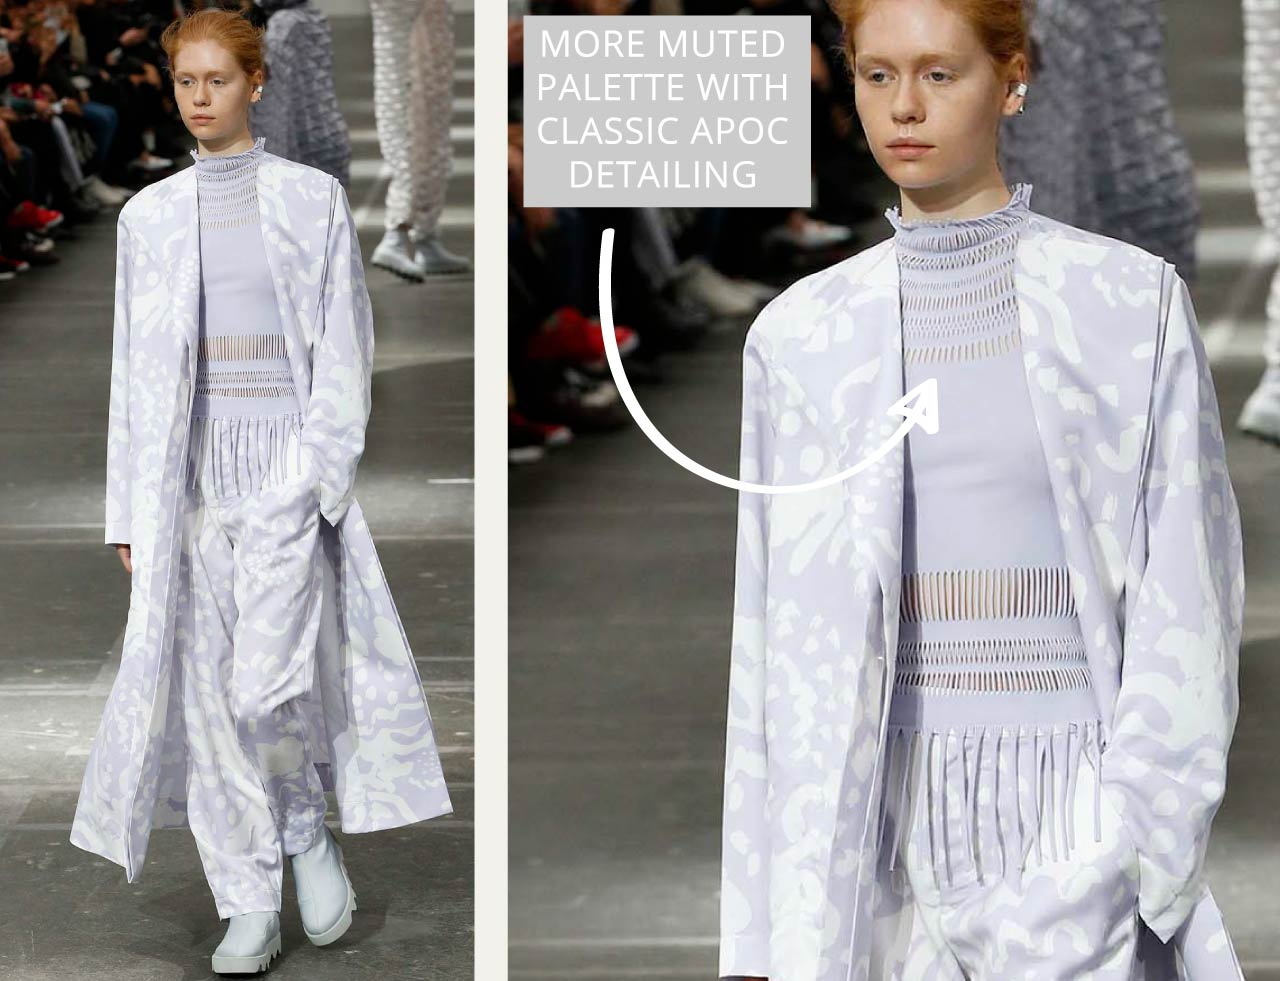 Connected Knits and Layering at Issey Miyake   The Cutting Class. Muted colour palette with classic A-POC detailing.